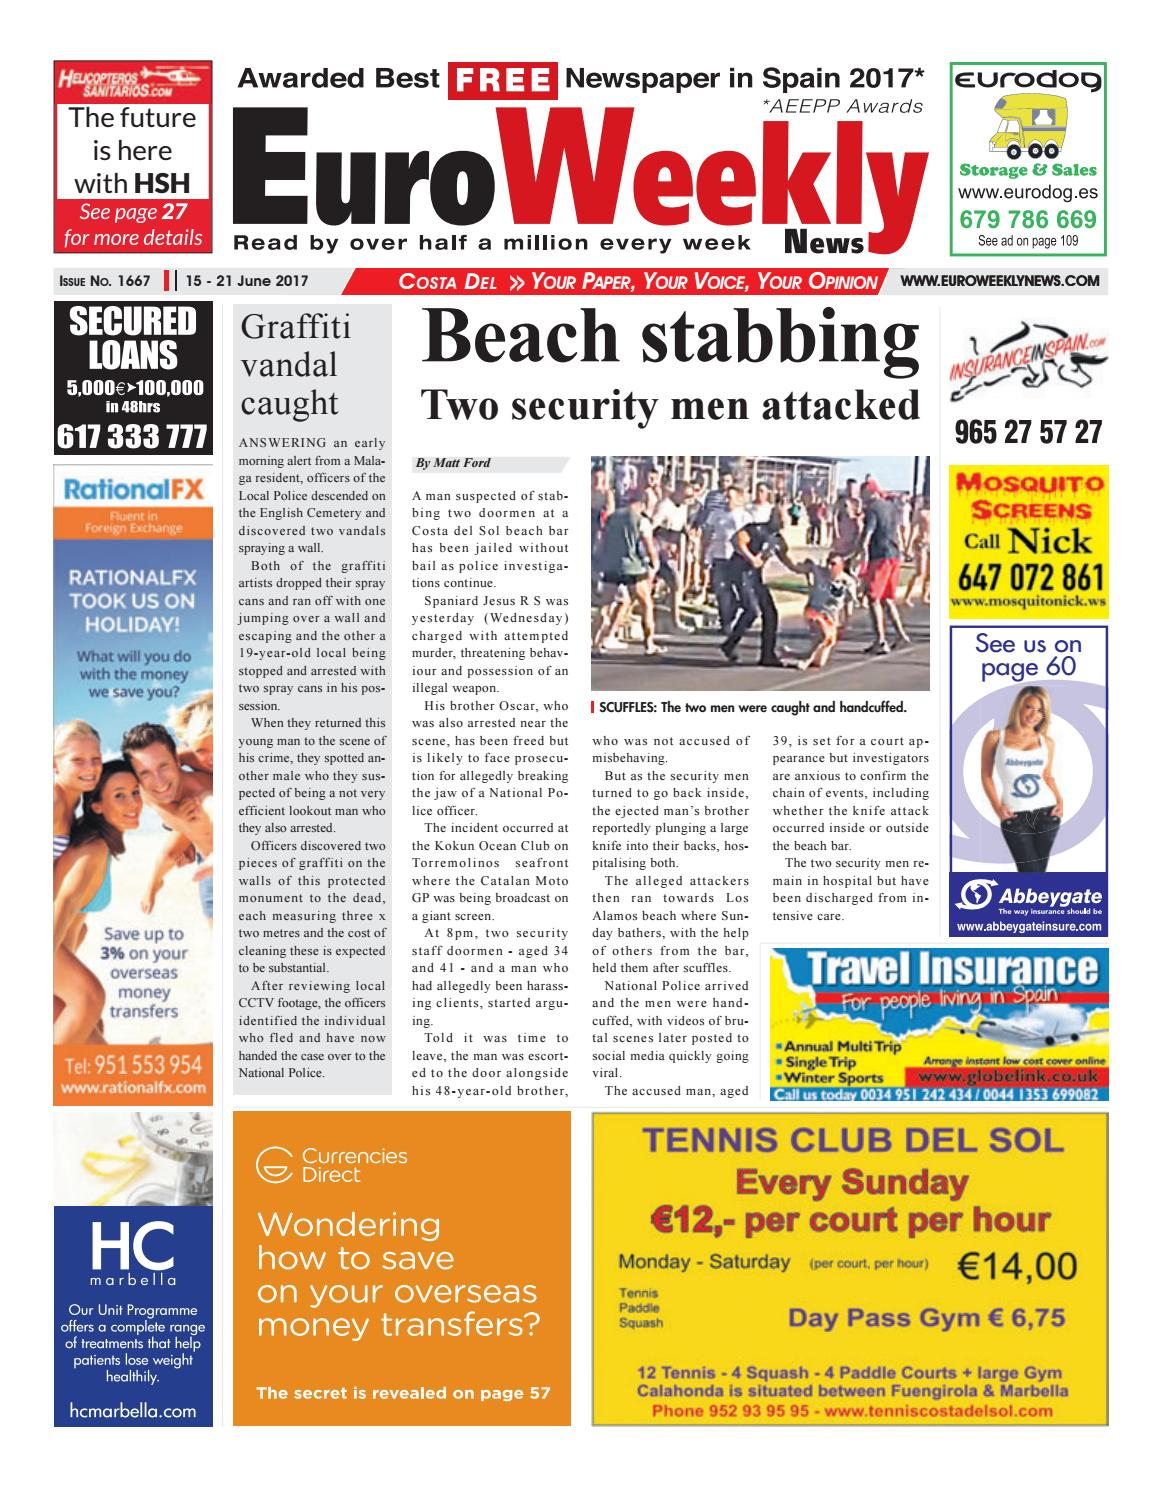 Euro weekly news costa del sol 15 21 june 2017 issue 1667 by euro weekly news costa del sol 15 21 june 2017 issue 1667 by euro weekly news media sa issuu fandeluxe Images